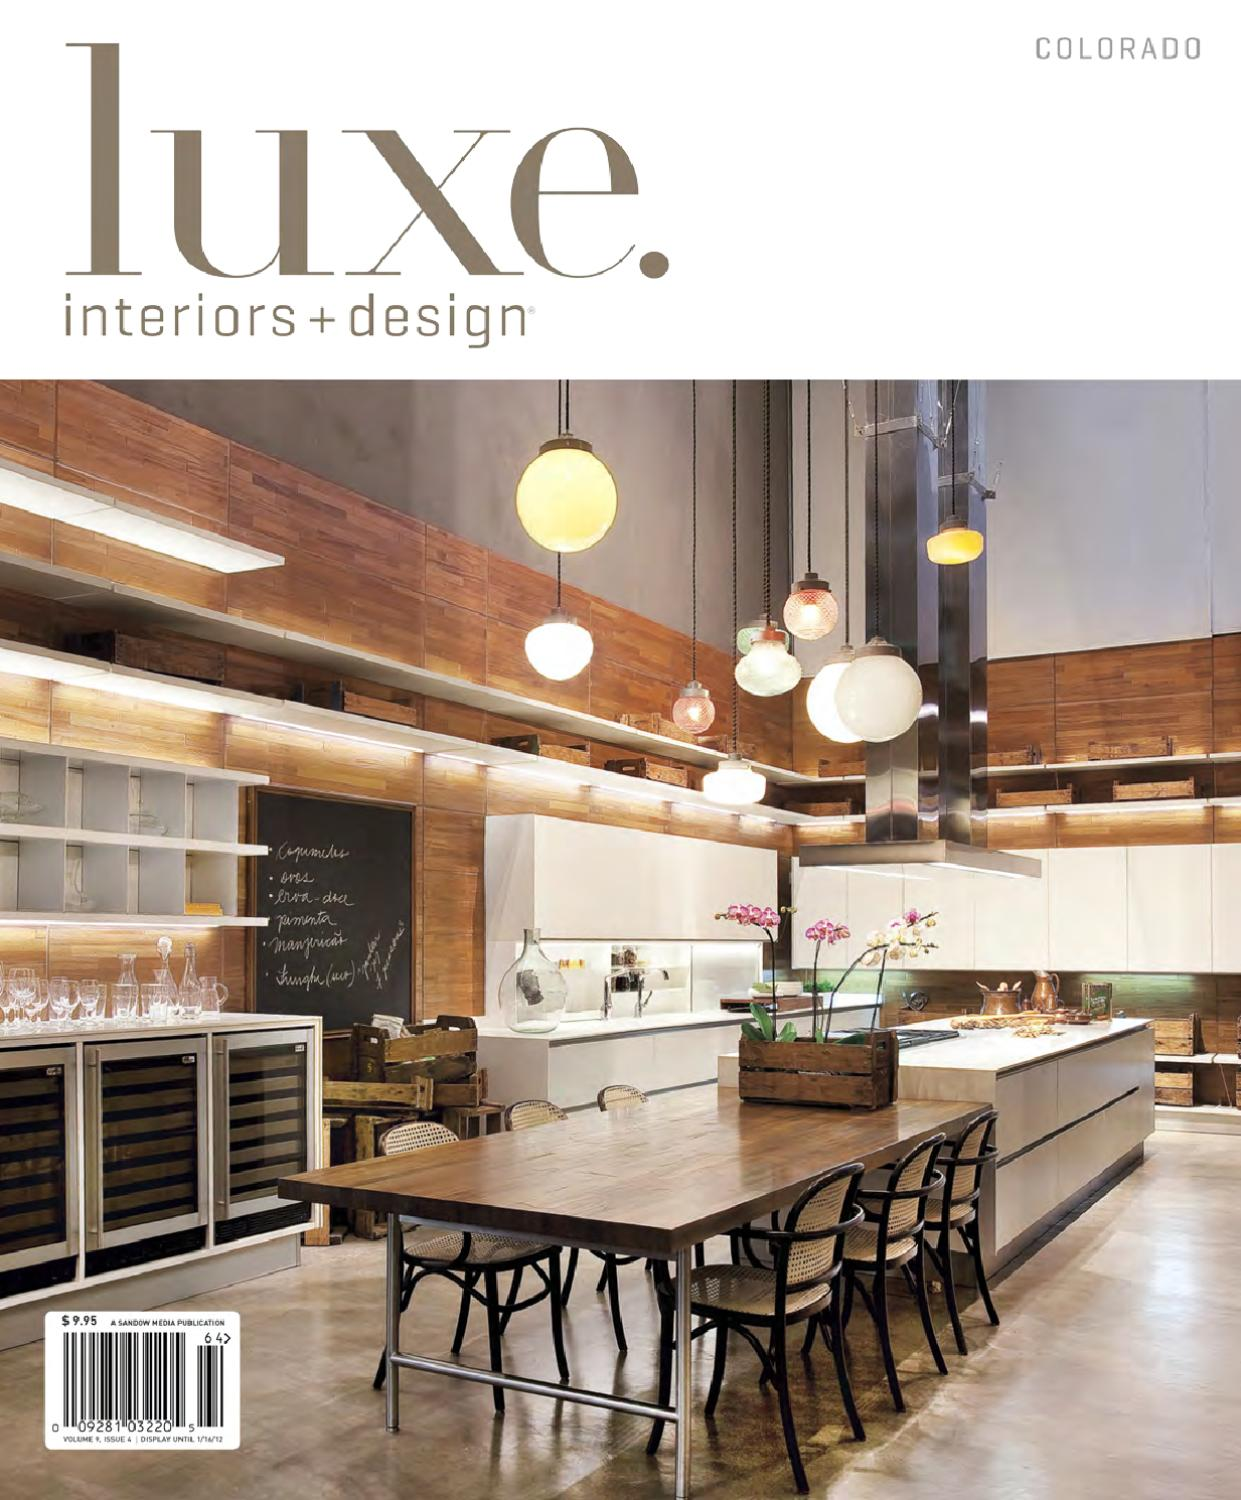 Luxe interiors design colorado by sandow media issuu